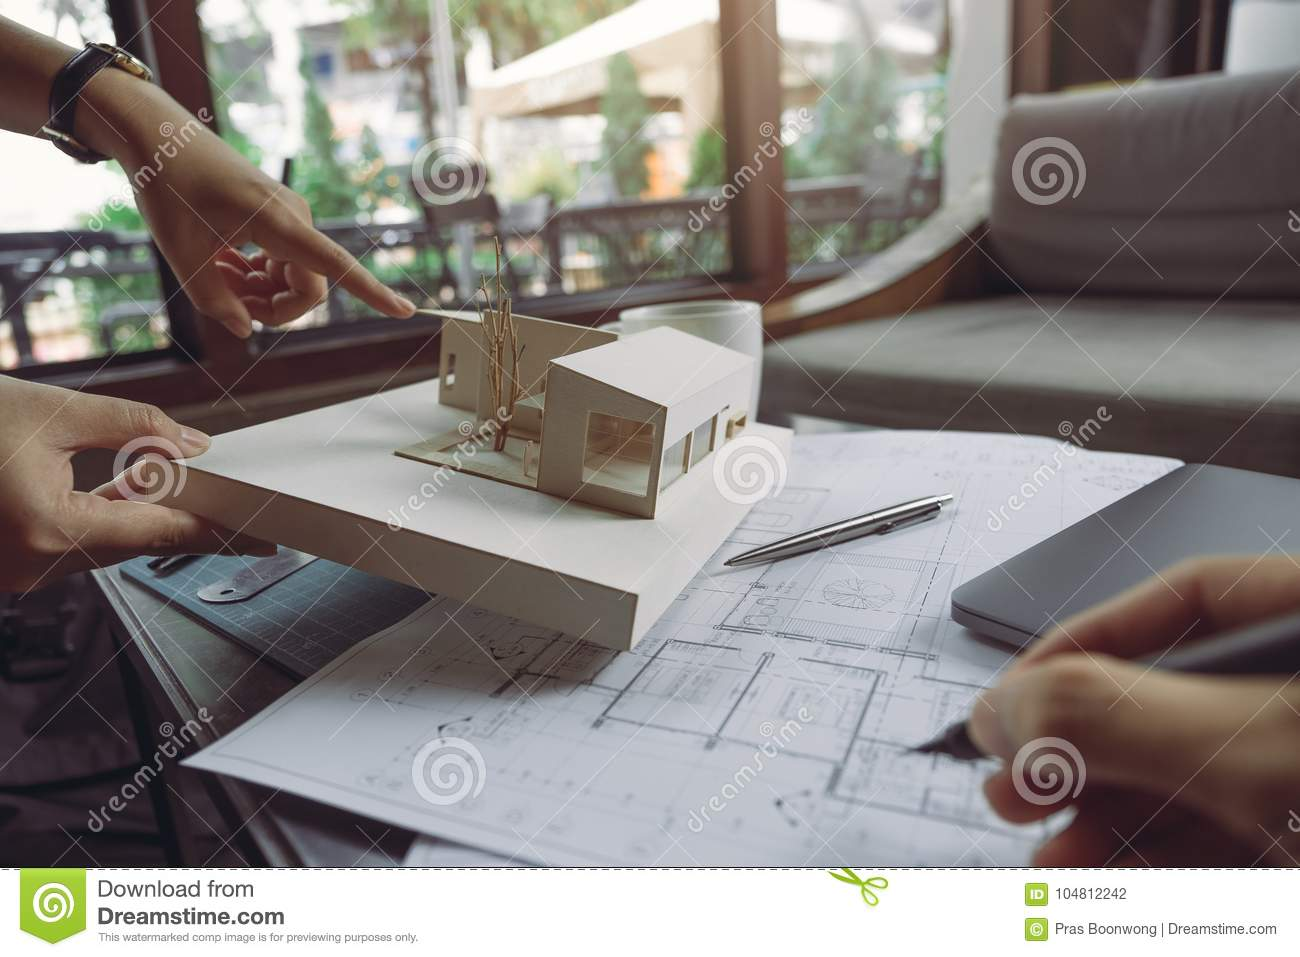 The colleague team of architects discussing and pointing at architecture model with shop drawing paper and laptop